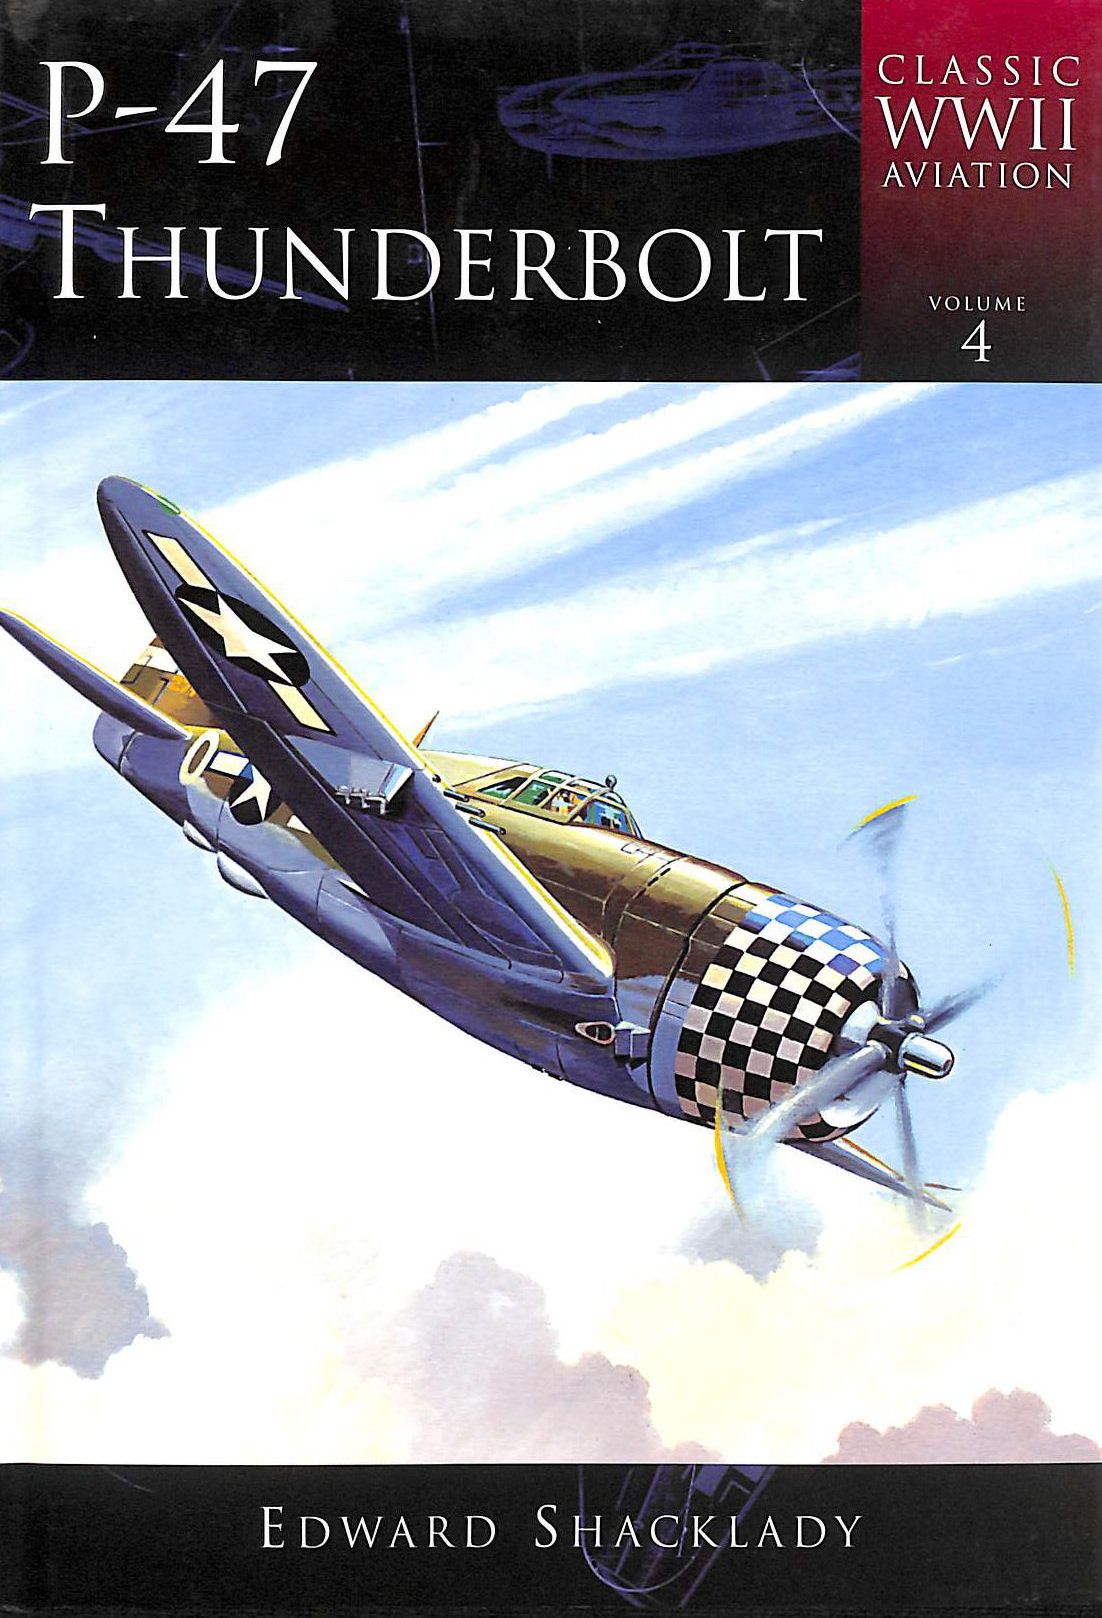 Image for P-47 Thunderbolt (Classic Aviation of the Second World War)